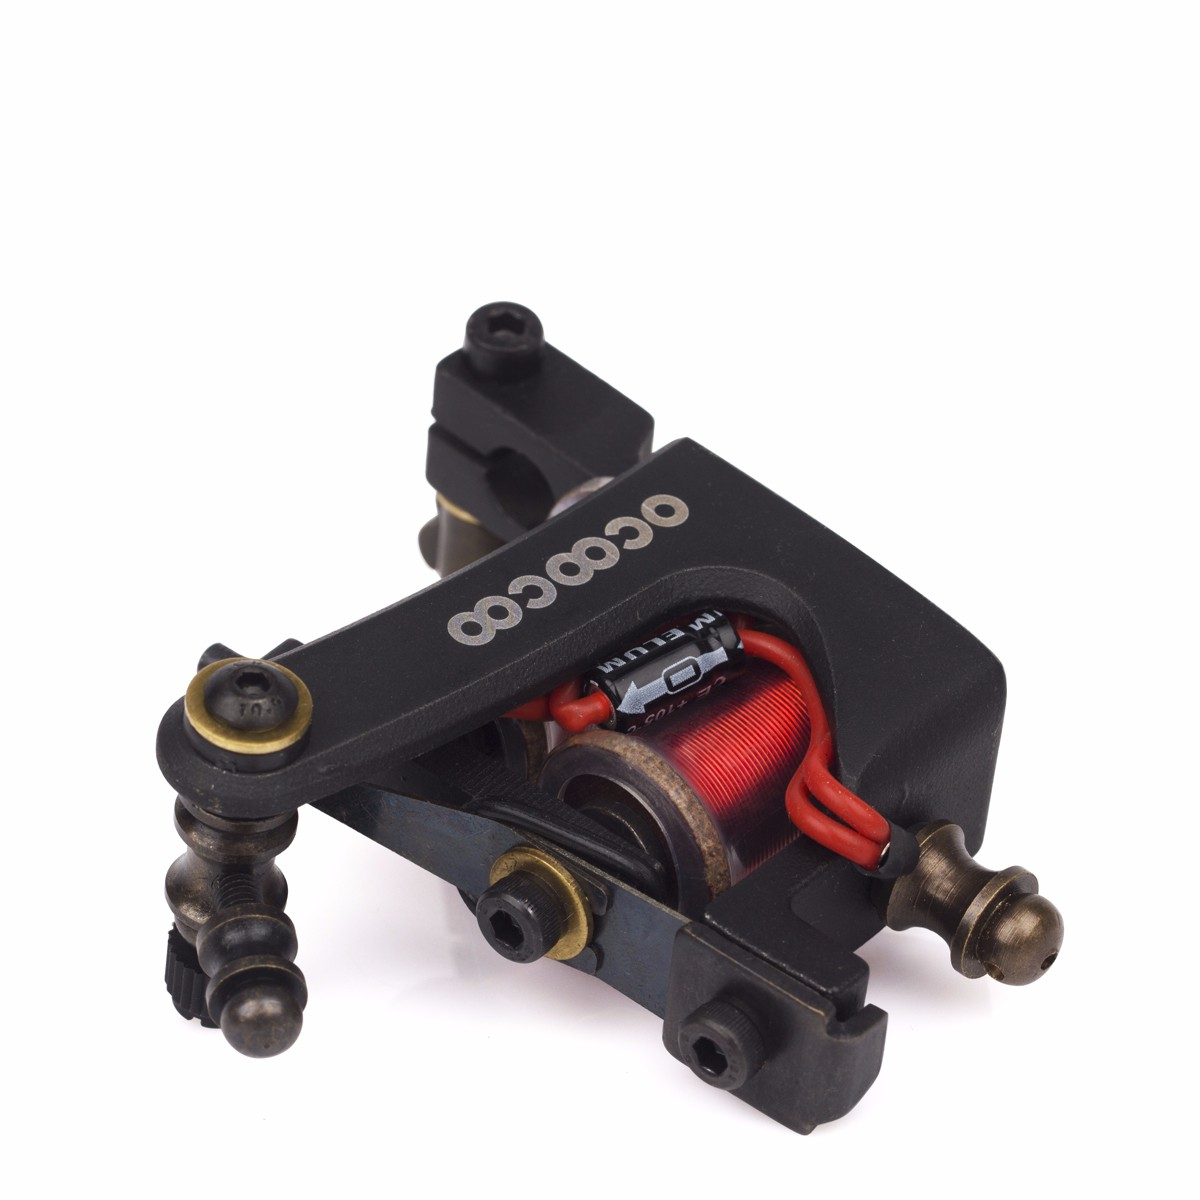 OCOOCOO ST400 Japan OFC High End Warps Coils Master Shader Tattoo Machine High Performance